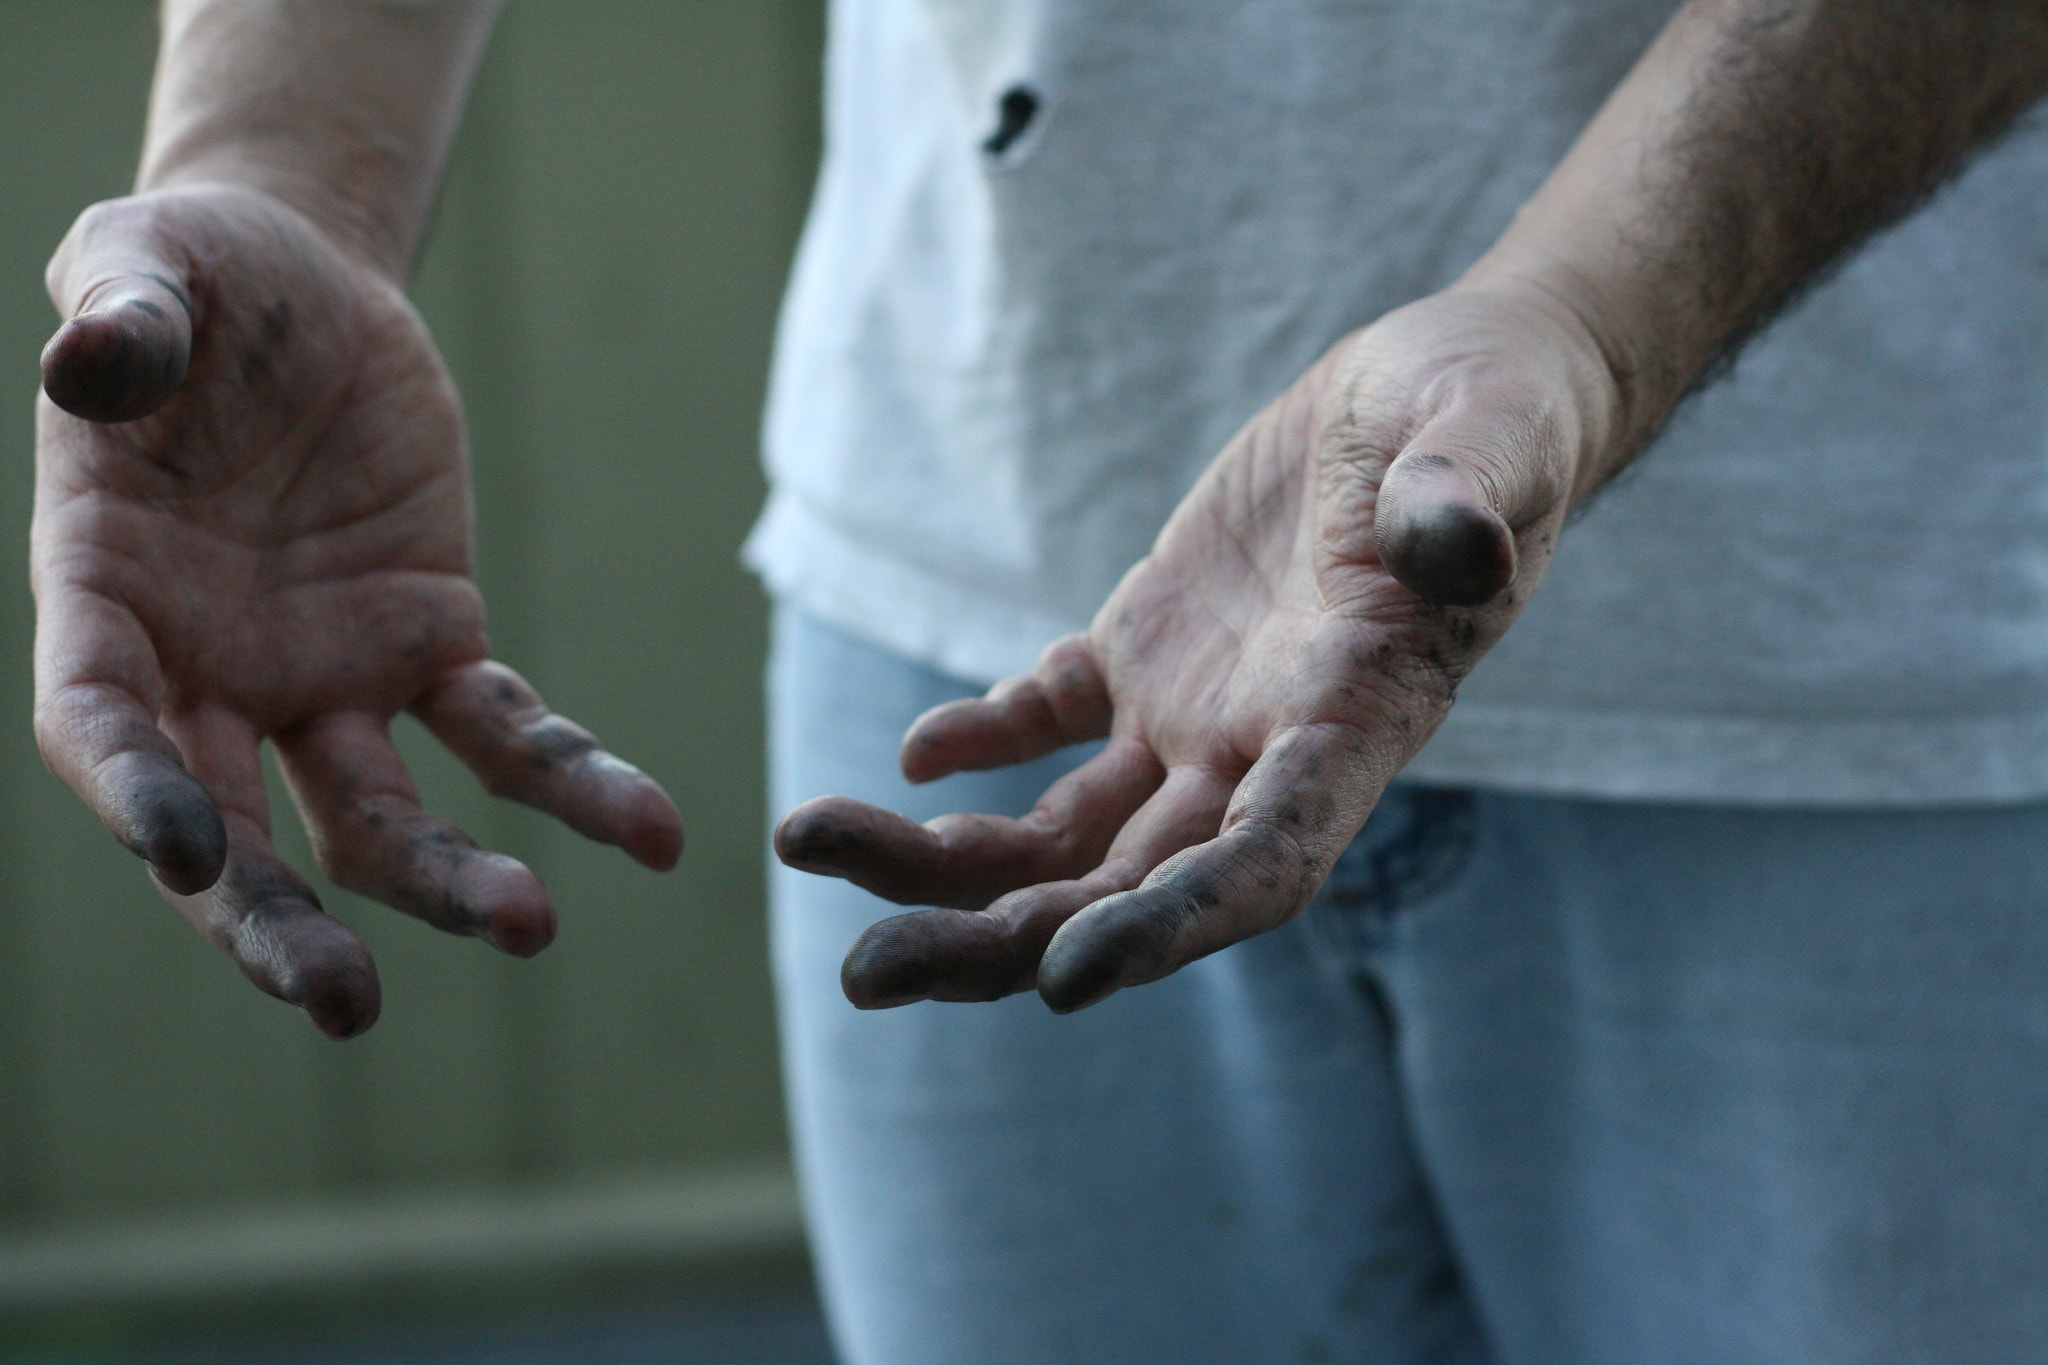 A man showing his greasy hands after working on a bike